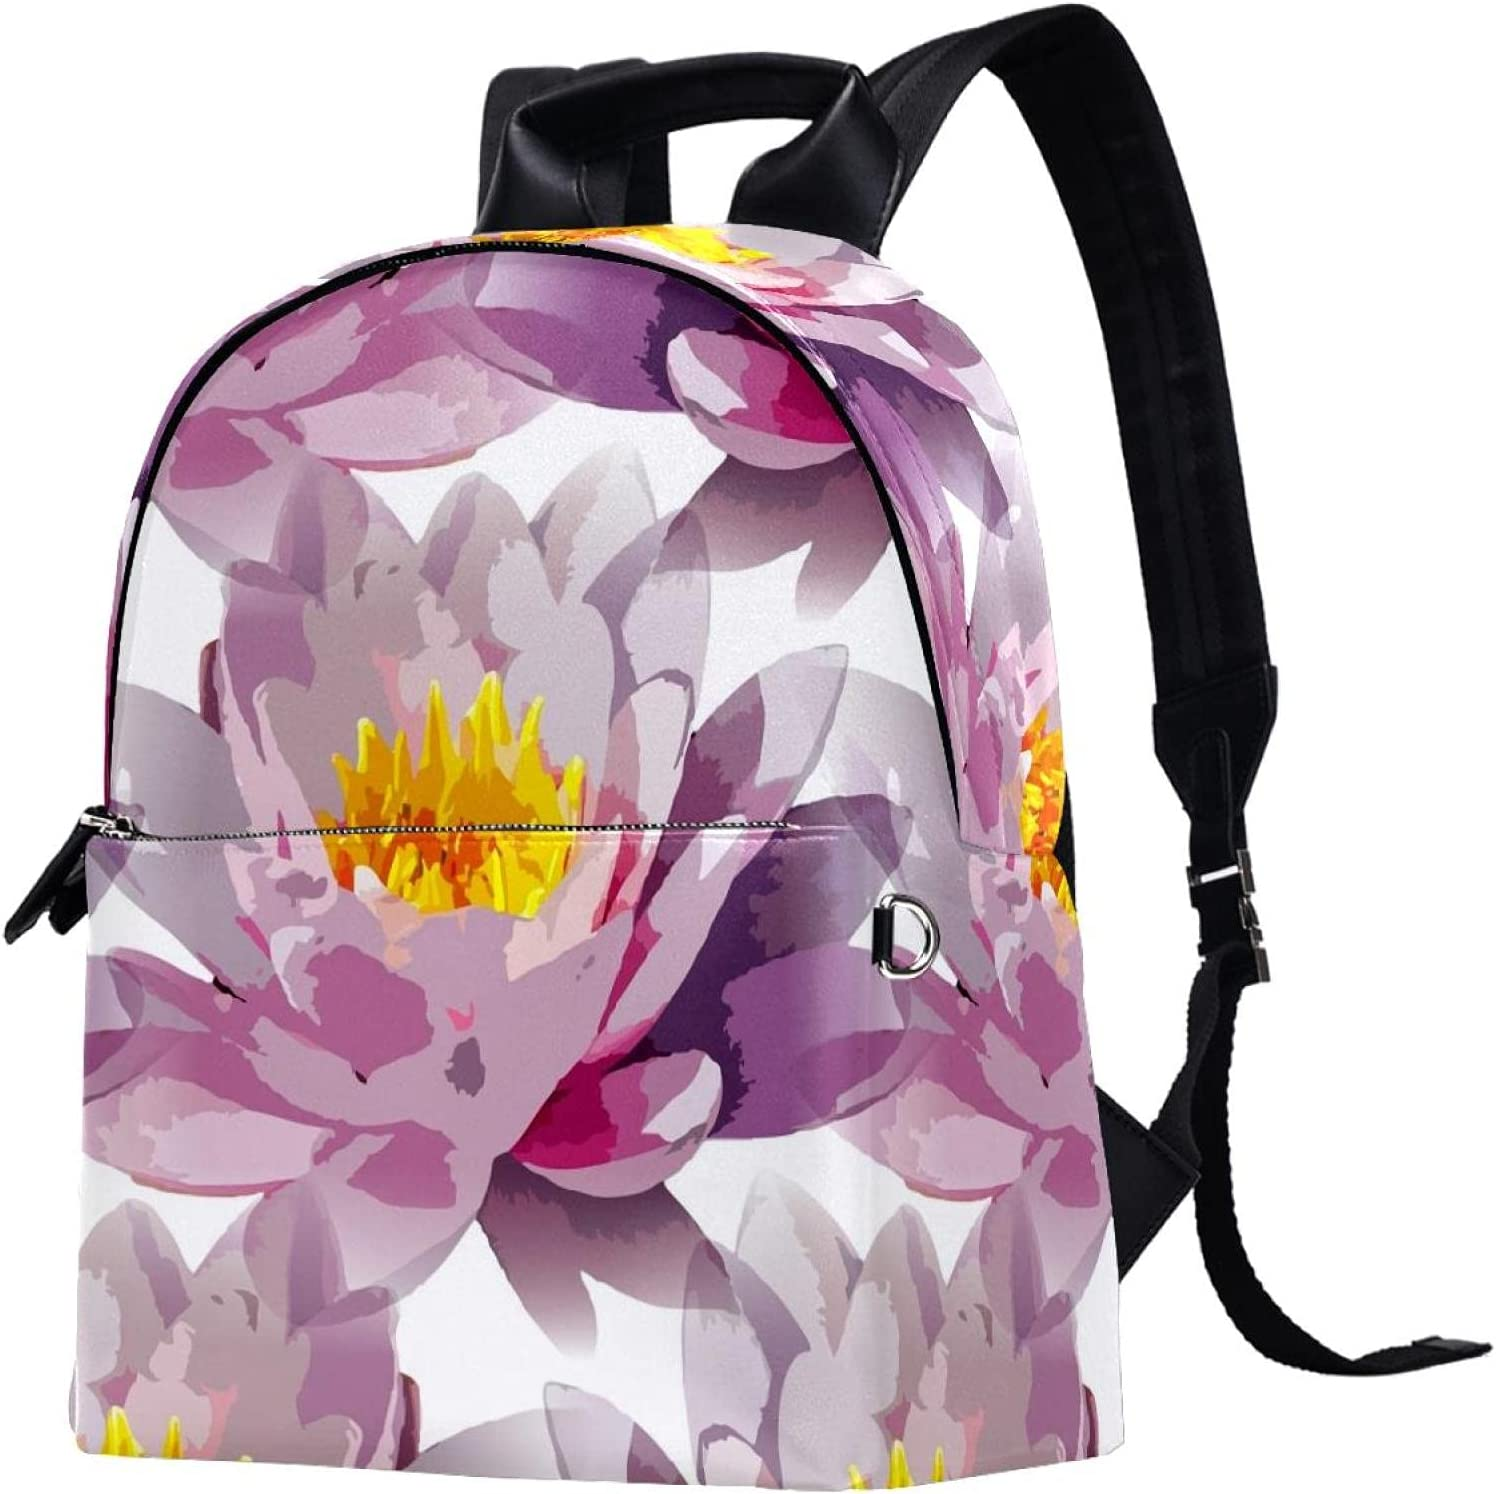 Backpack for Girls Bookbags,Purple Lotus School Challenge the lowest price of Japan Manufacturer regenerated product